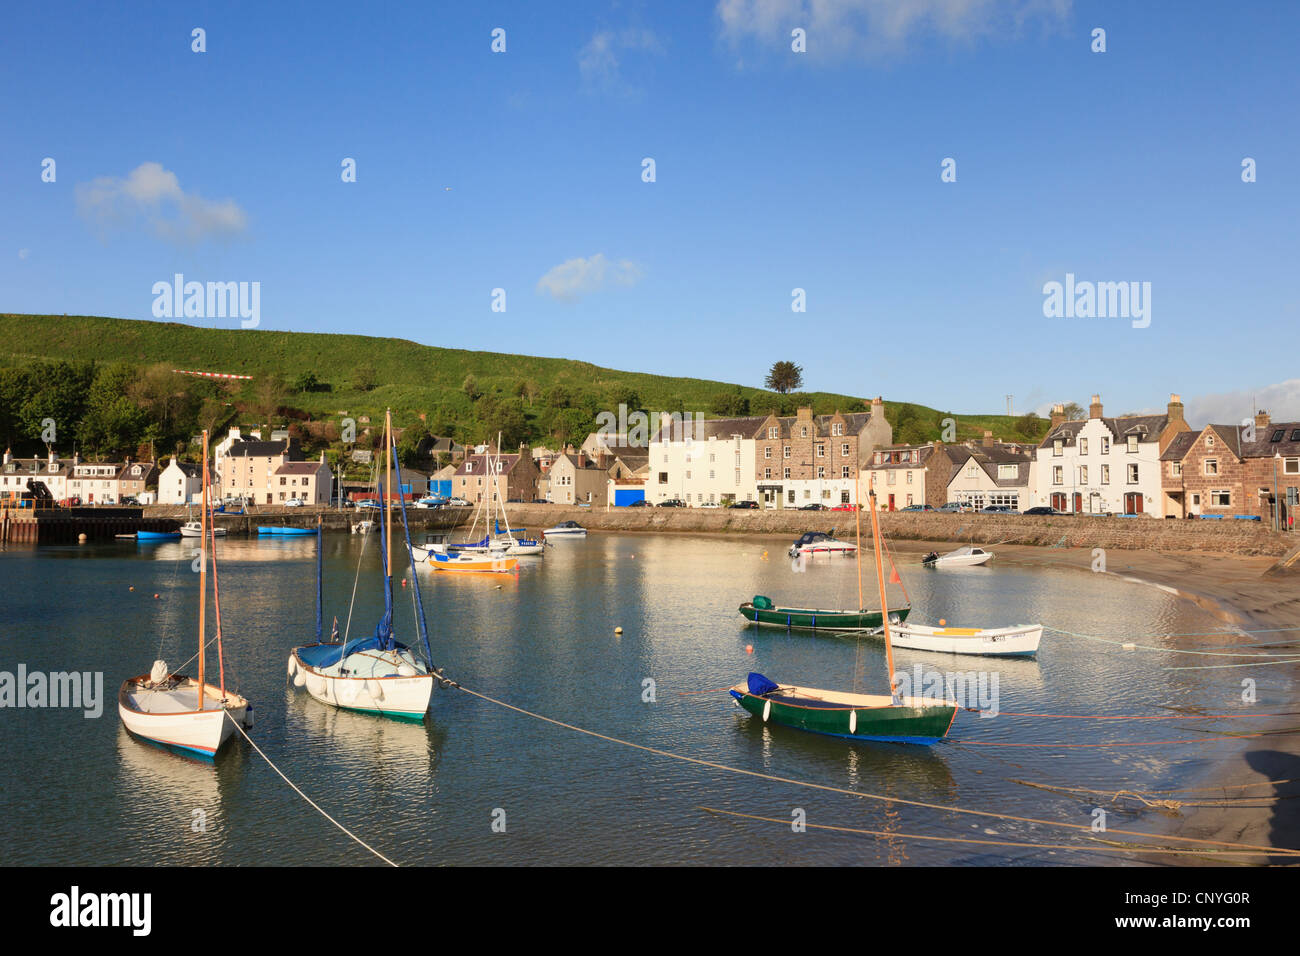 View across fishing port with small boats in harbour at Stonehaven, Aberdeenshire, Scotland, UK, Britain. - Stock Image